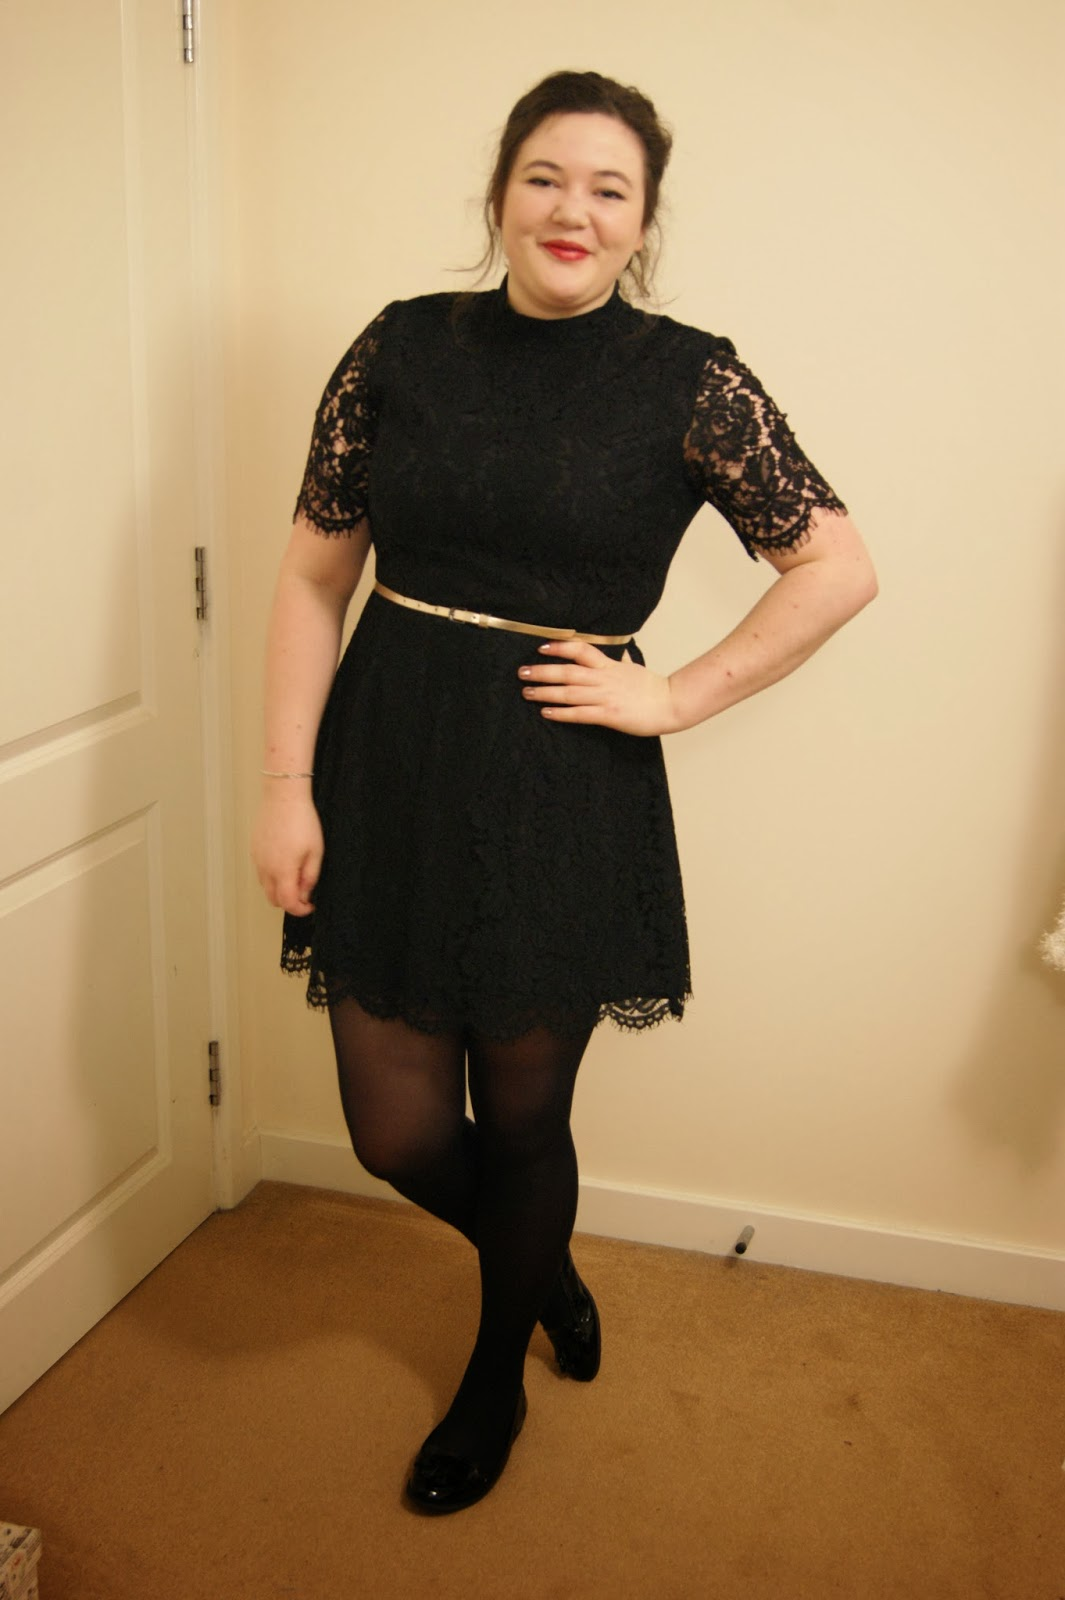 8a1bd3a0aab6 Dress: c/o Marks and Spencer, belt: Primark, tights: John Lewis, shoes:  Clarks, excited face: model's own!